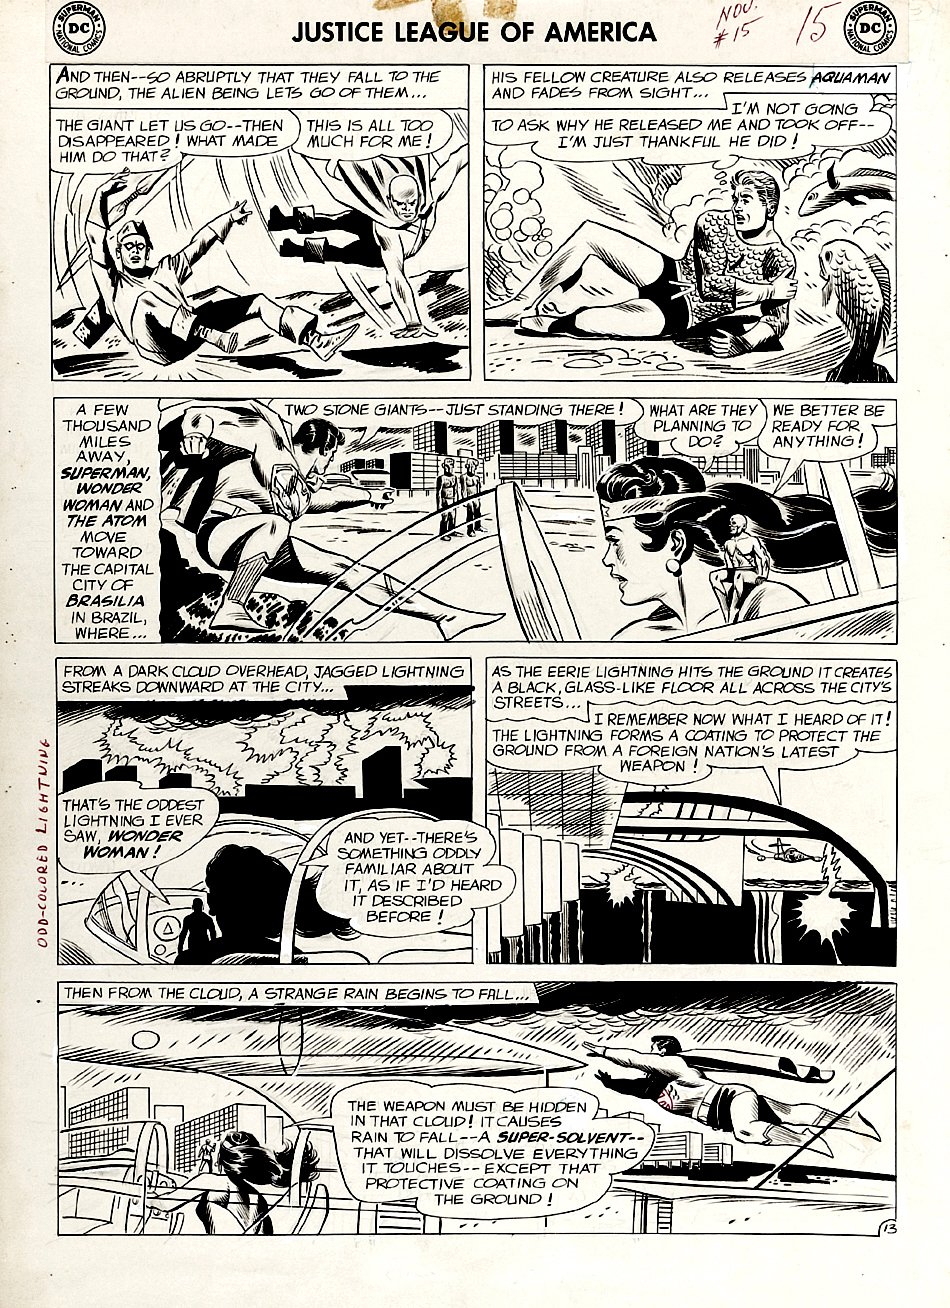 Justice League of America #15 p 13 (ENTIRE TEAM BATTLING!) Large Art - 1962